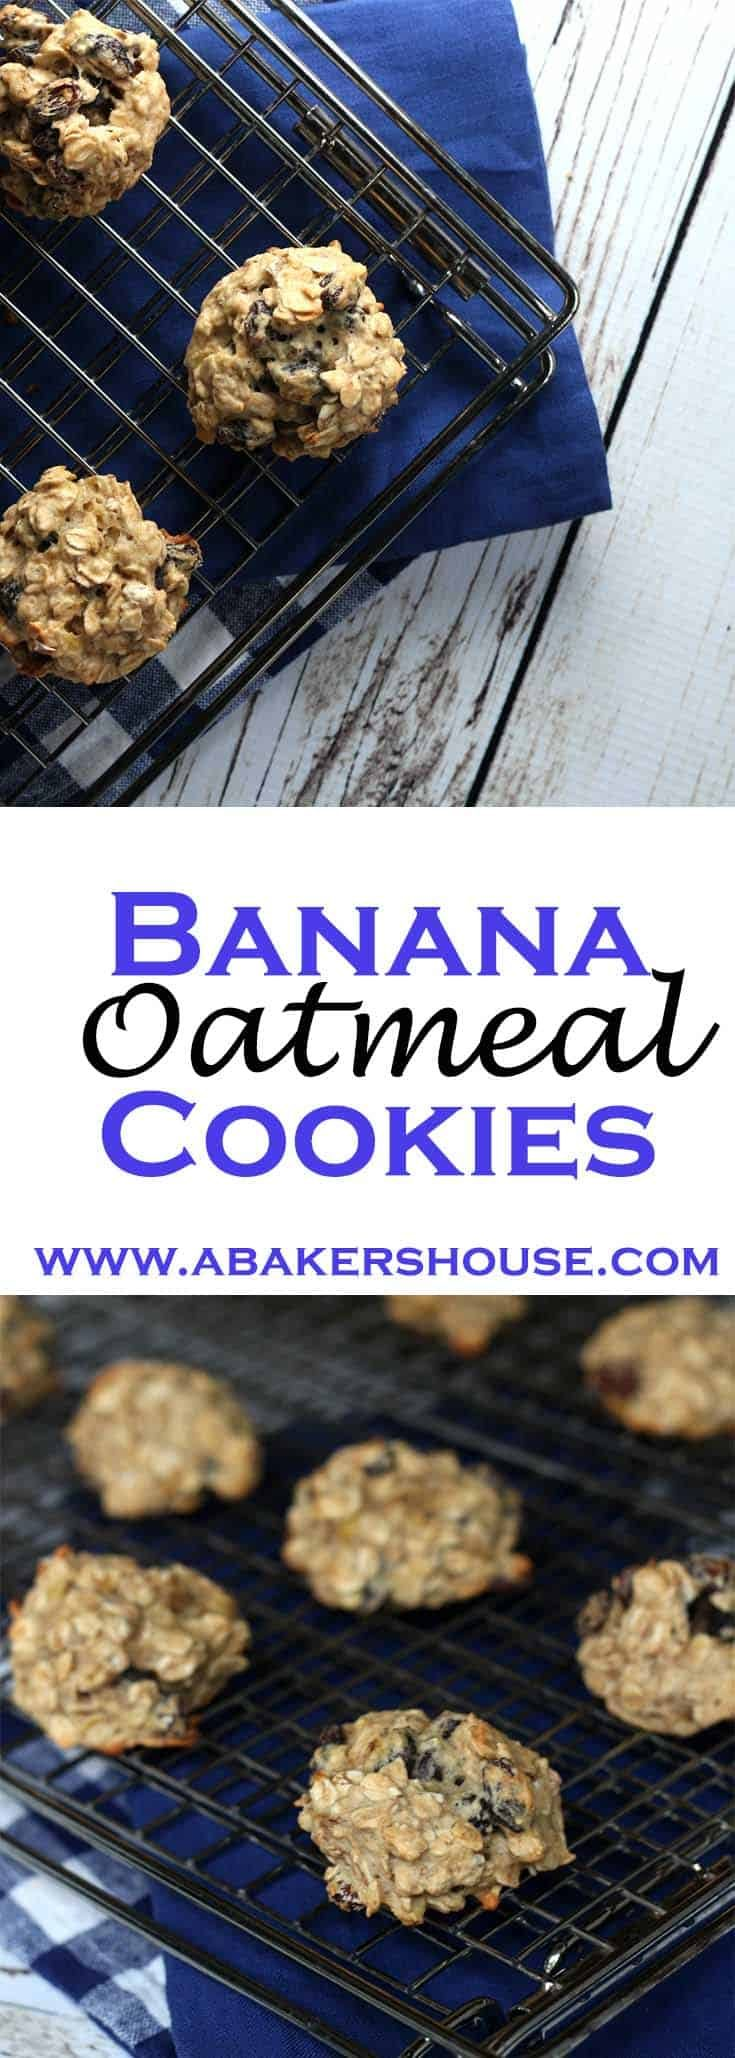 Banana Oatmeal Cookies add just enough of a twist to the traditional oatmeal cookie to make them special. With no added sugar, this recipe for banana oatmeal cookies packs the flavor without a heavy dose of sweetness. #abakershouse #bananacookies #oatmealcookies #lowsugarcookies